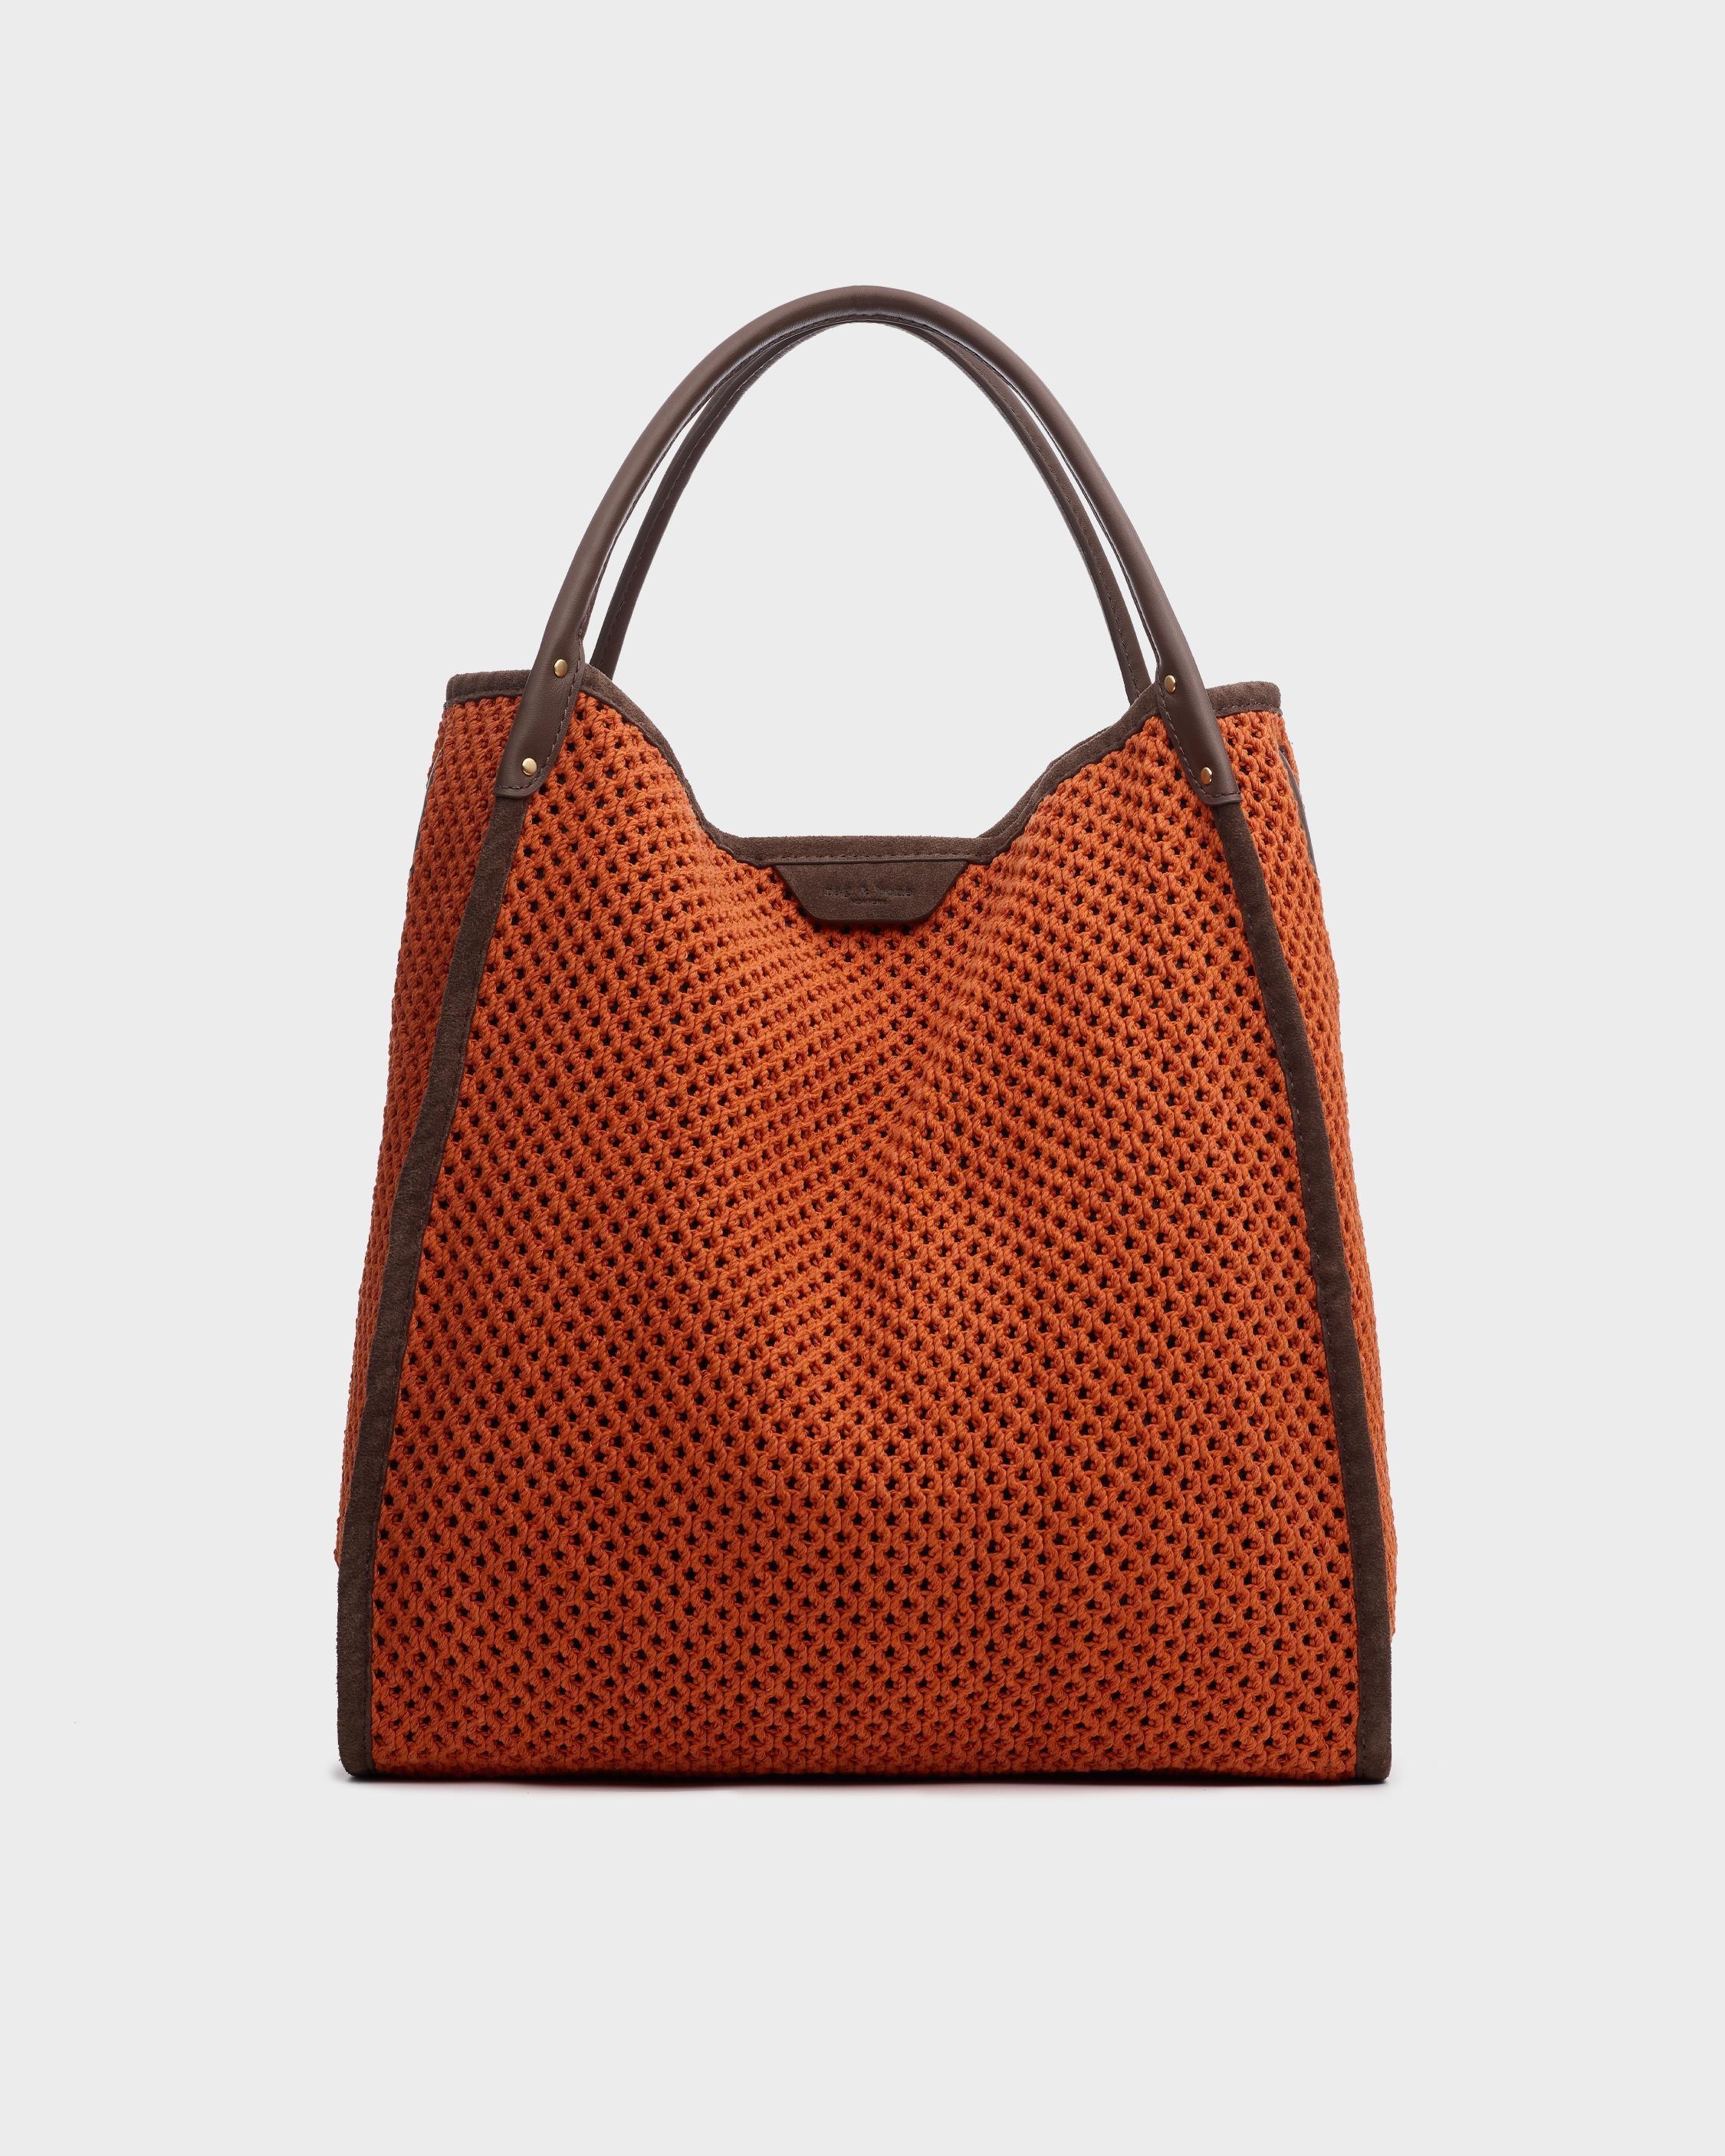 Summer passenger tote - leather and recycled materials